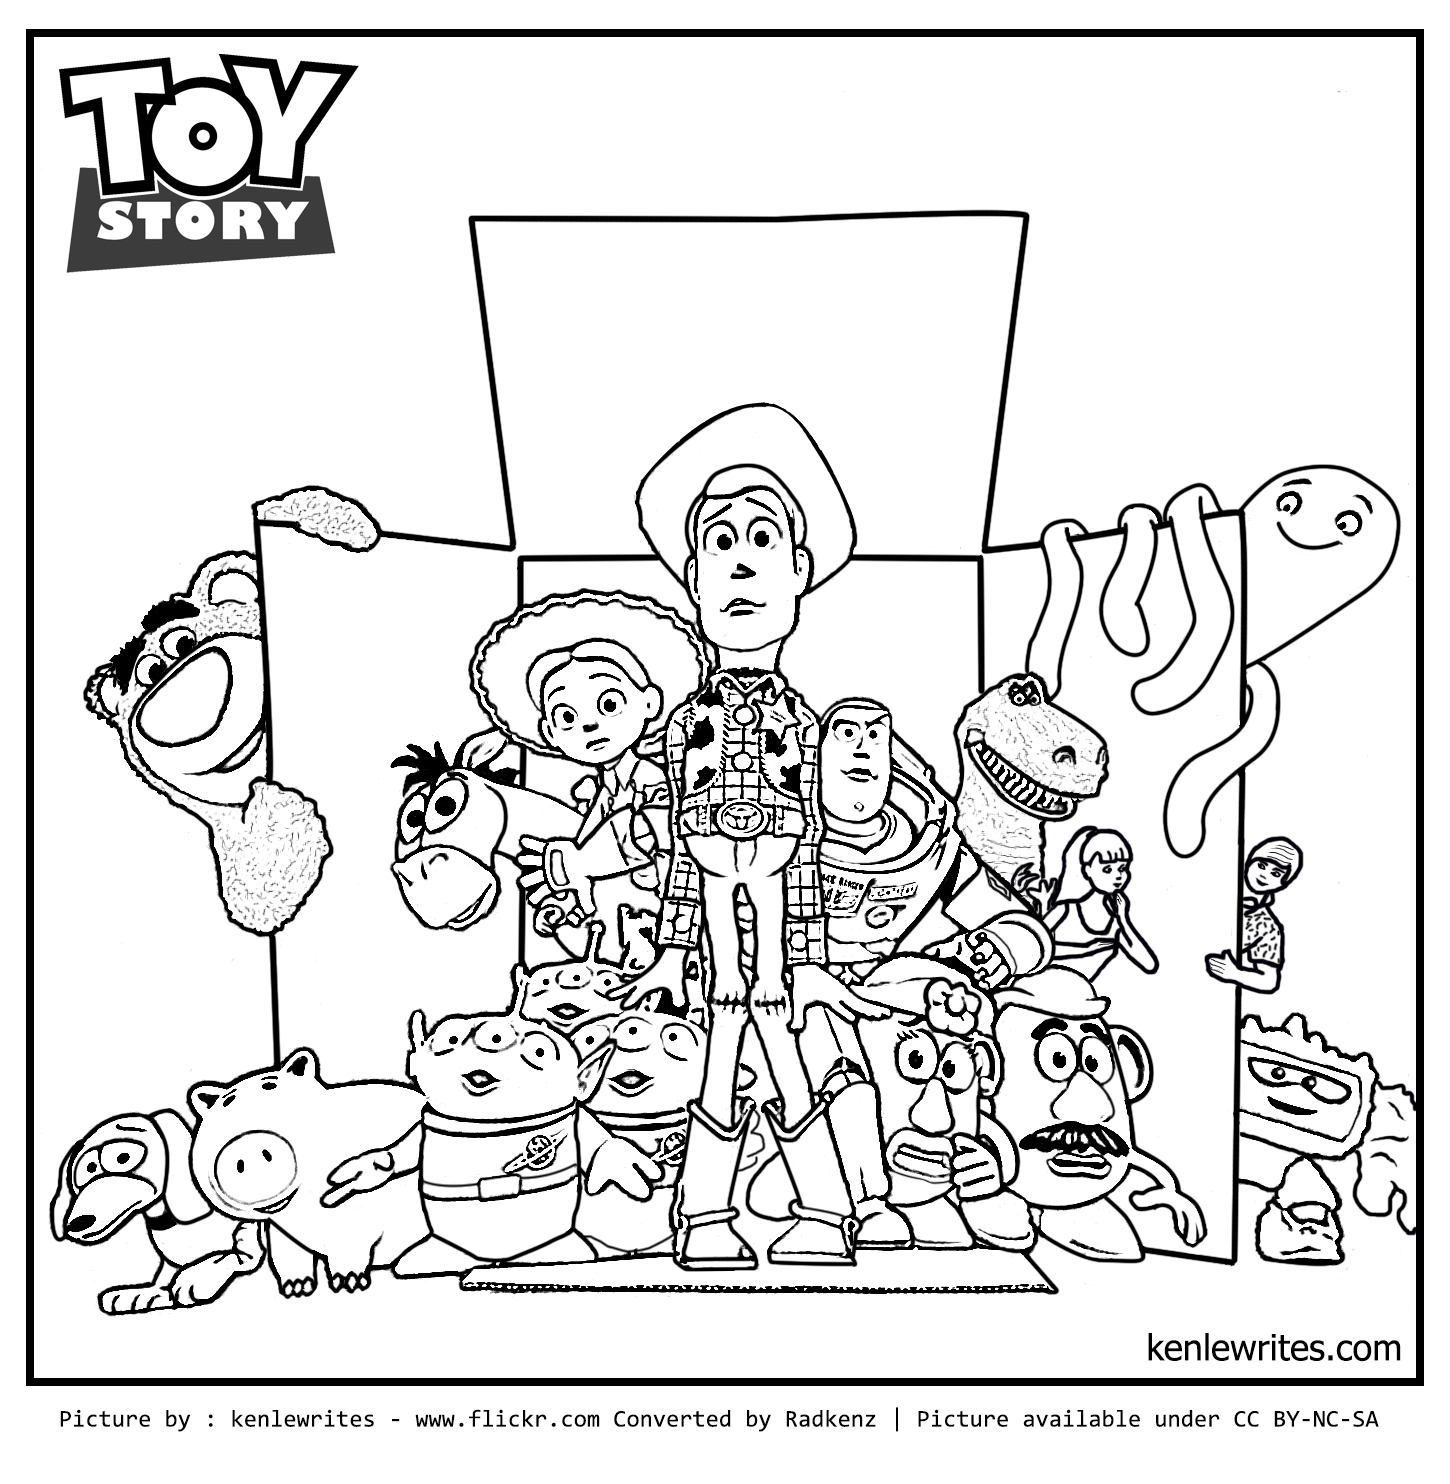 Radkenz Artworks Gallery: toy story